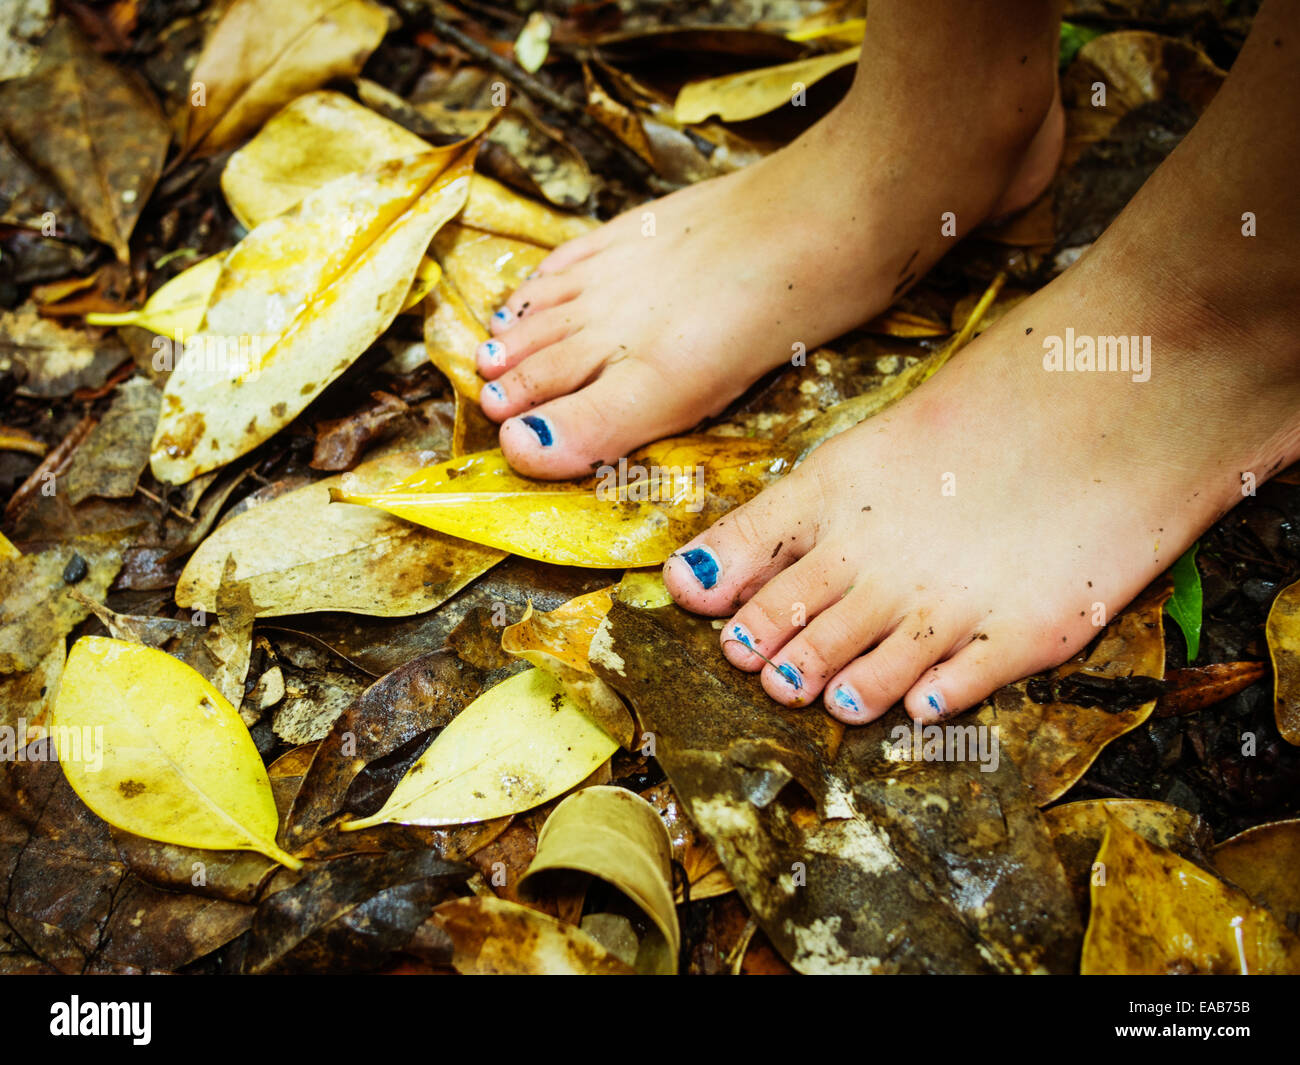 Barefoot on fallen leaves. - Stock Image